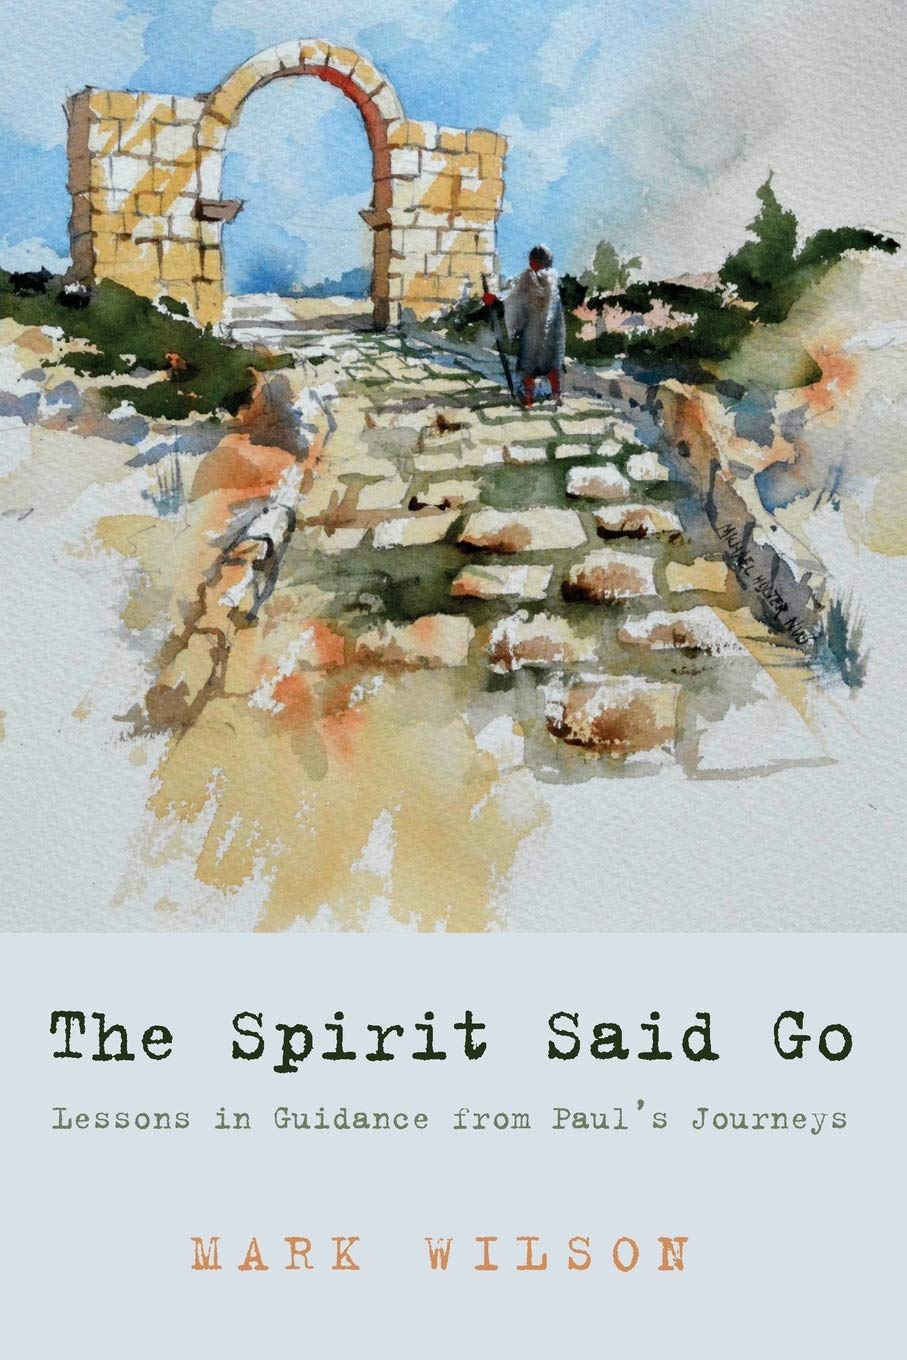 The Spirit Said Go: Lessons in Guidance from Paul's Journeys